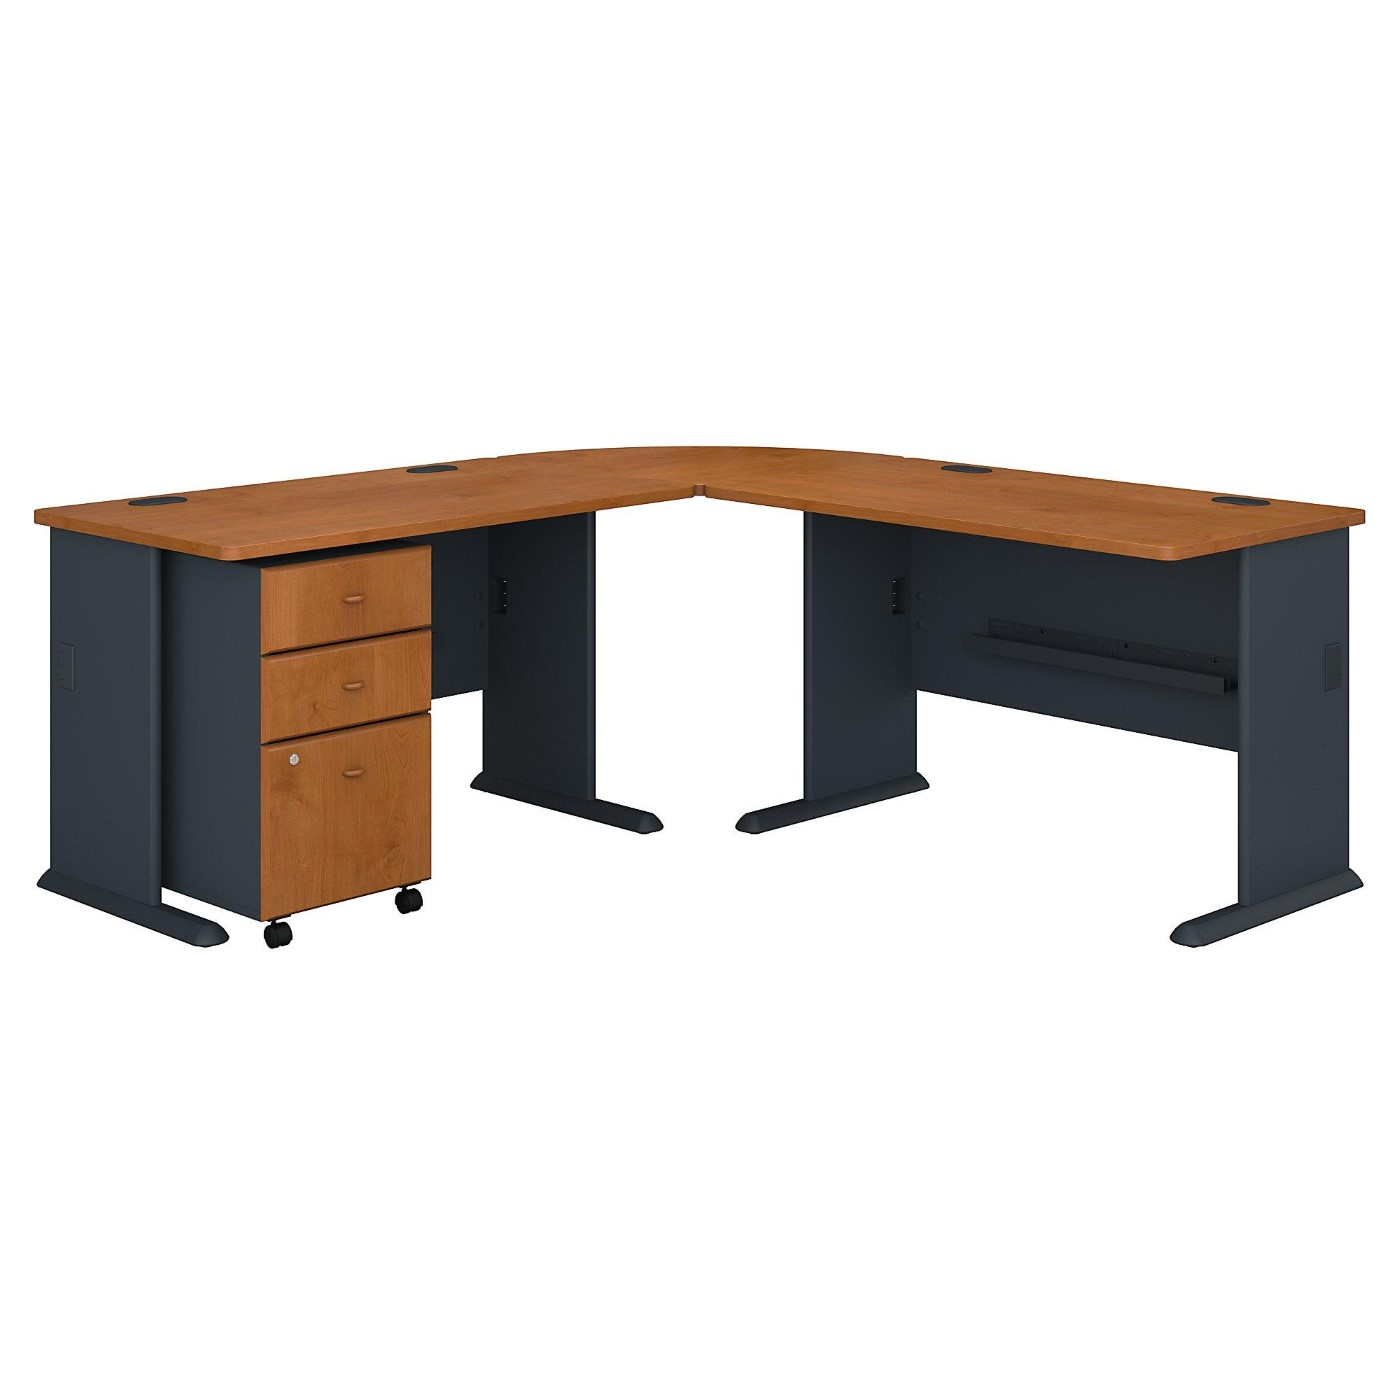 <font color=#c60><b>BUSH BUSINESS FURNITURE SERIES A 75W X 75D L SHAPED DESK WITH MOBILE FILE CABINET. FREE SHIPPING</font></b></font>